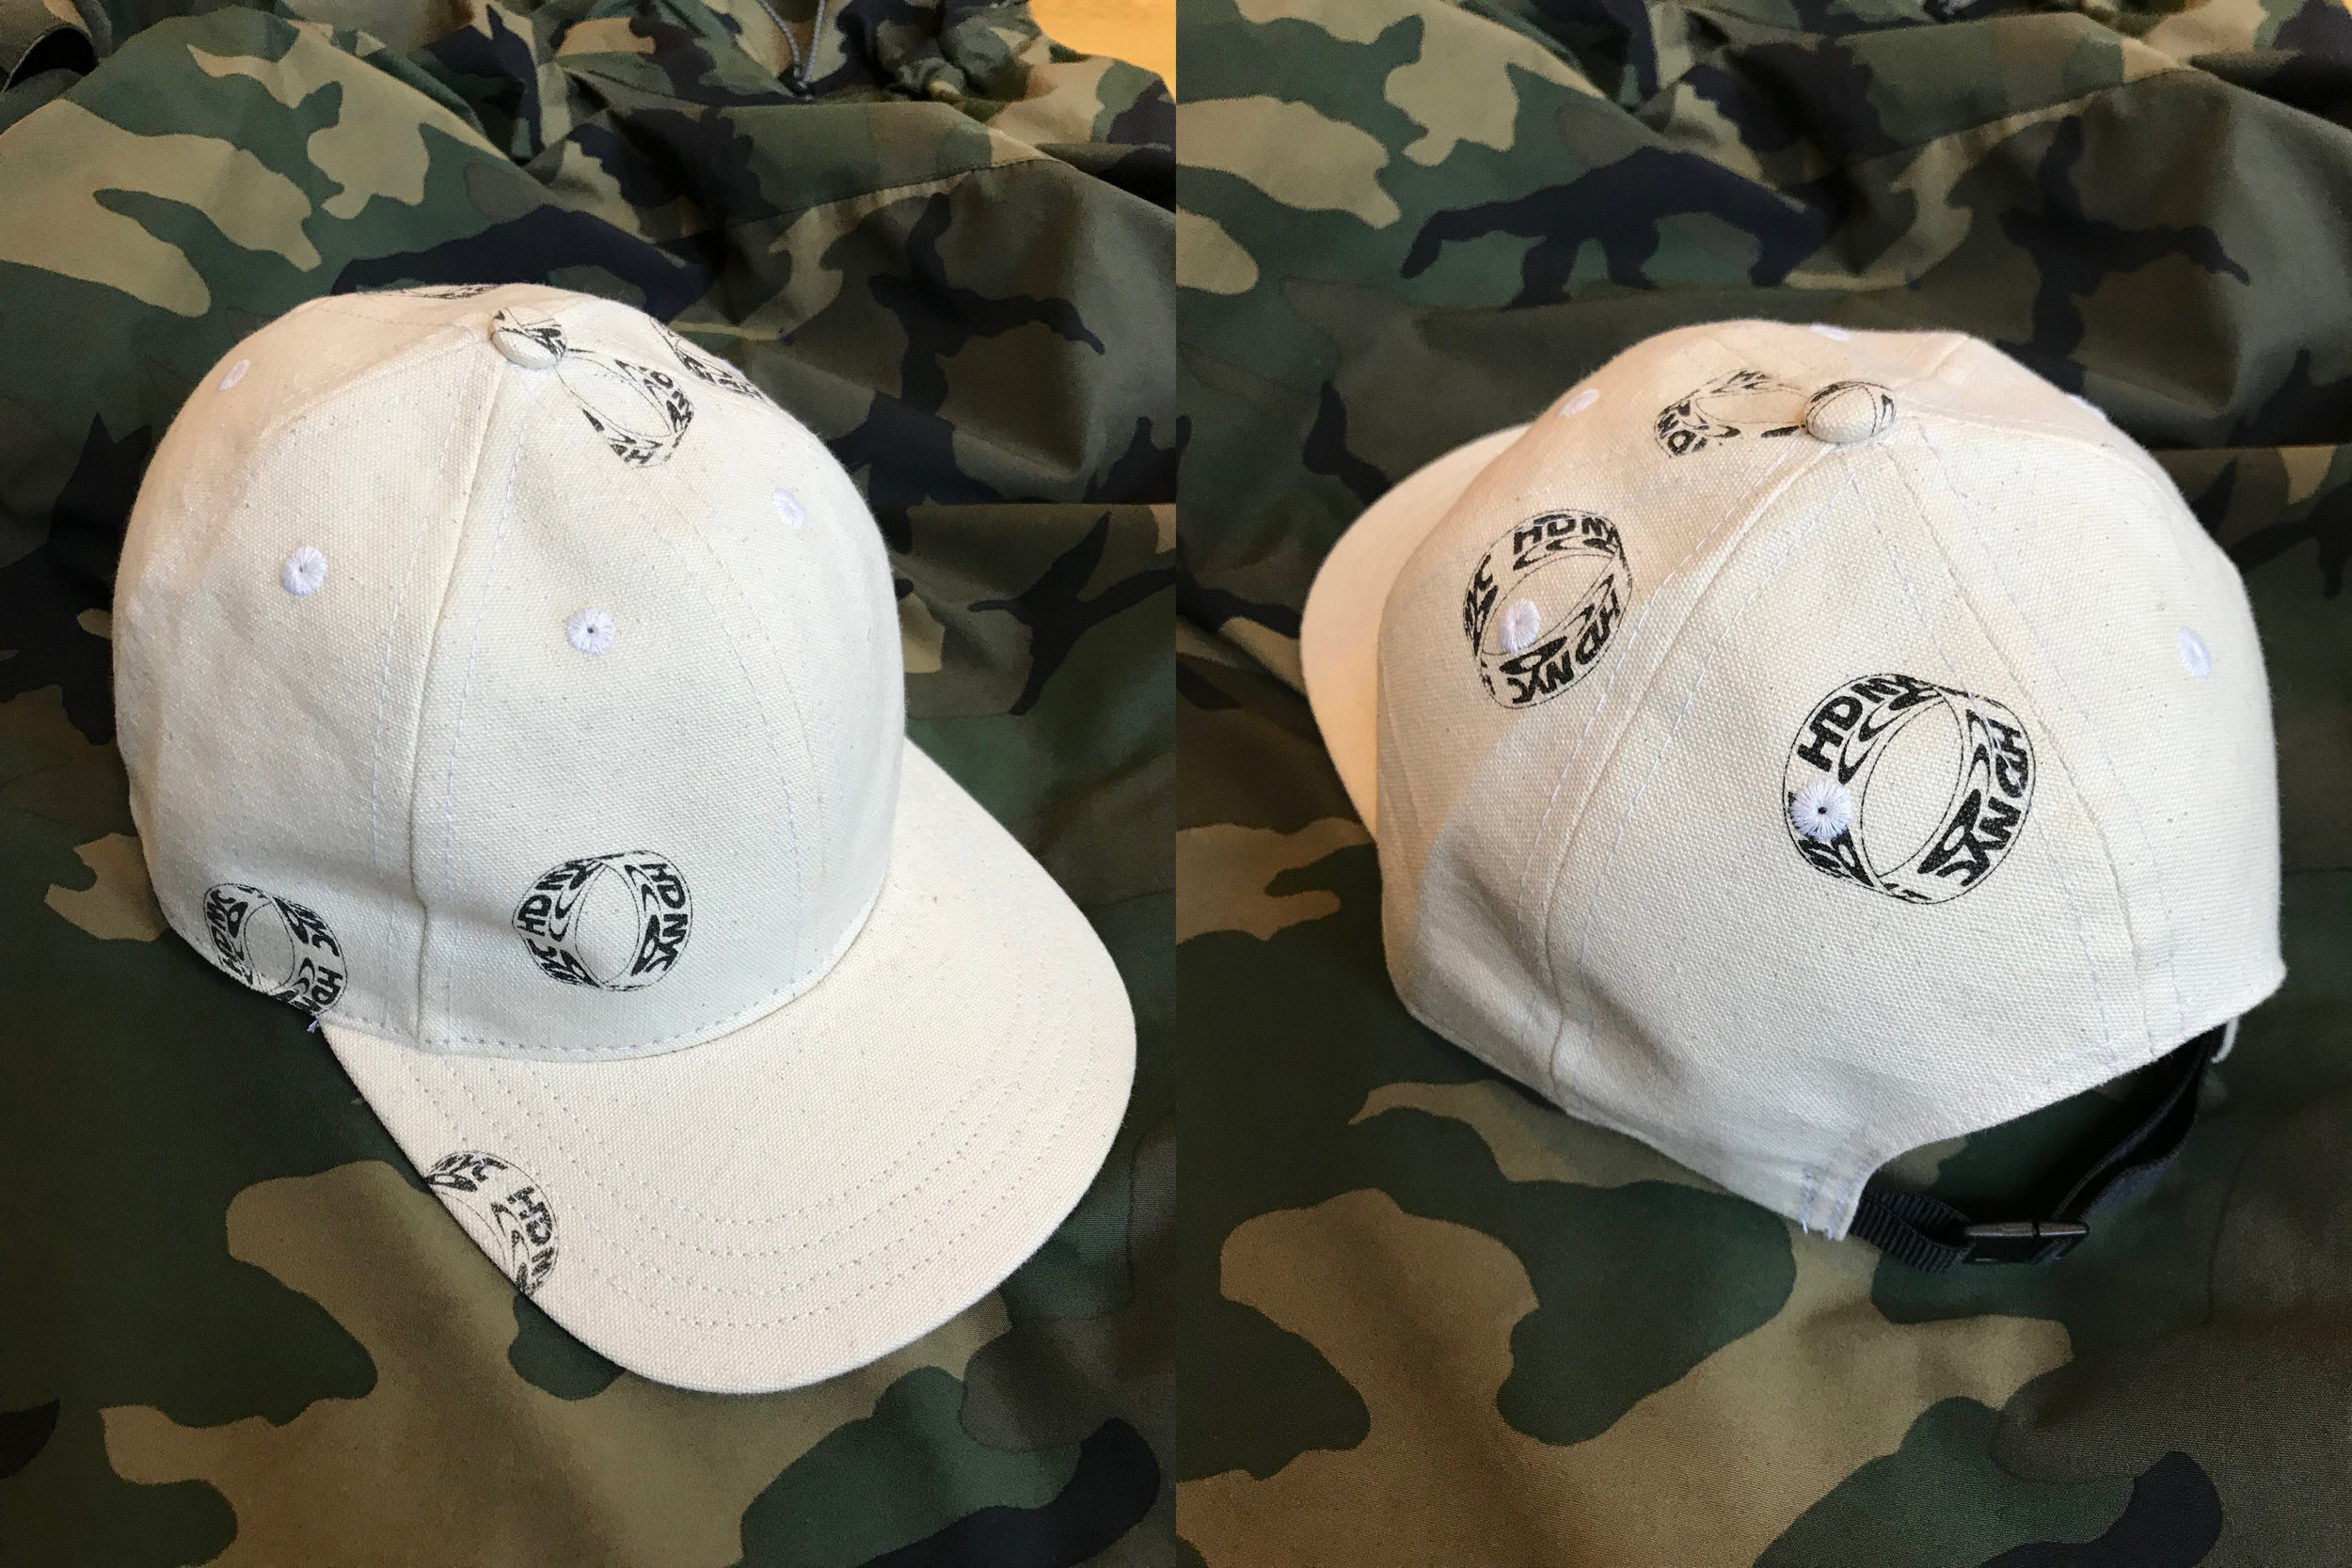 LIMITED EDITION C N Y CANVAS CAPS —— ONLINE ONLY ——- each UNIQUE